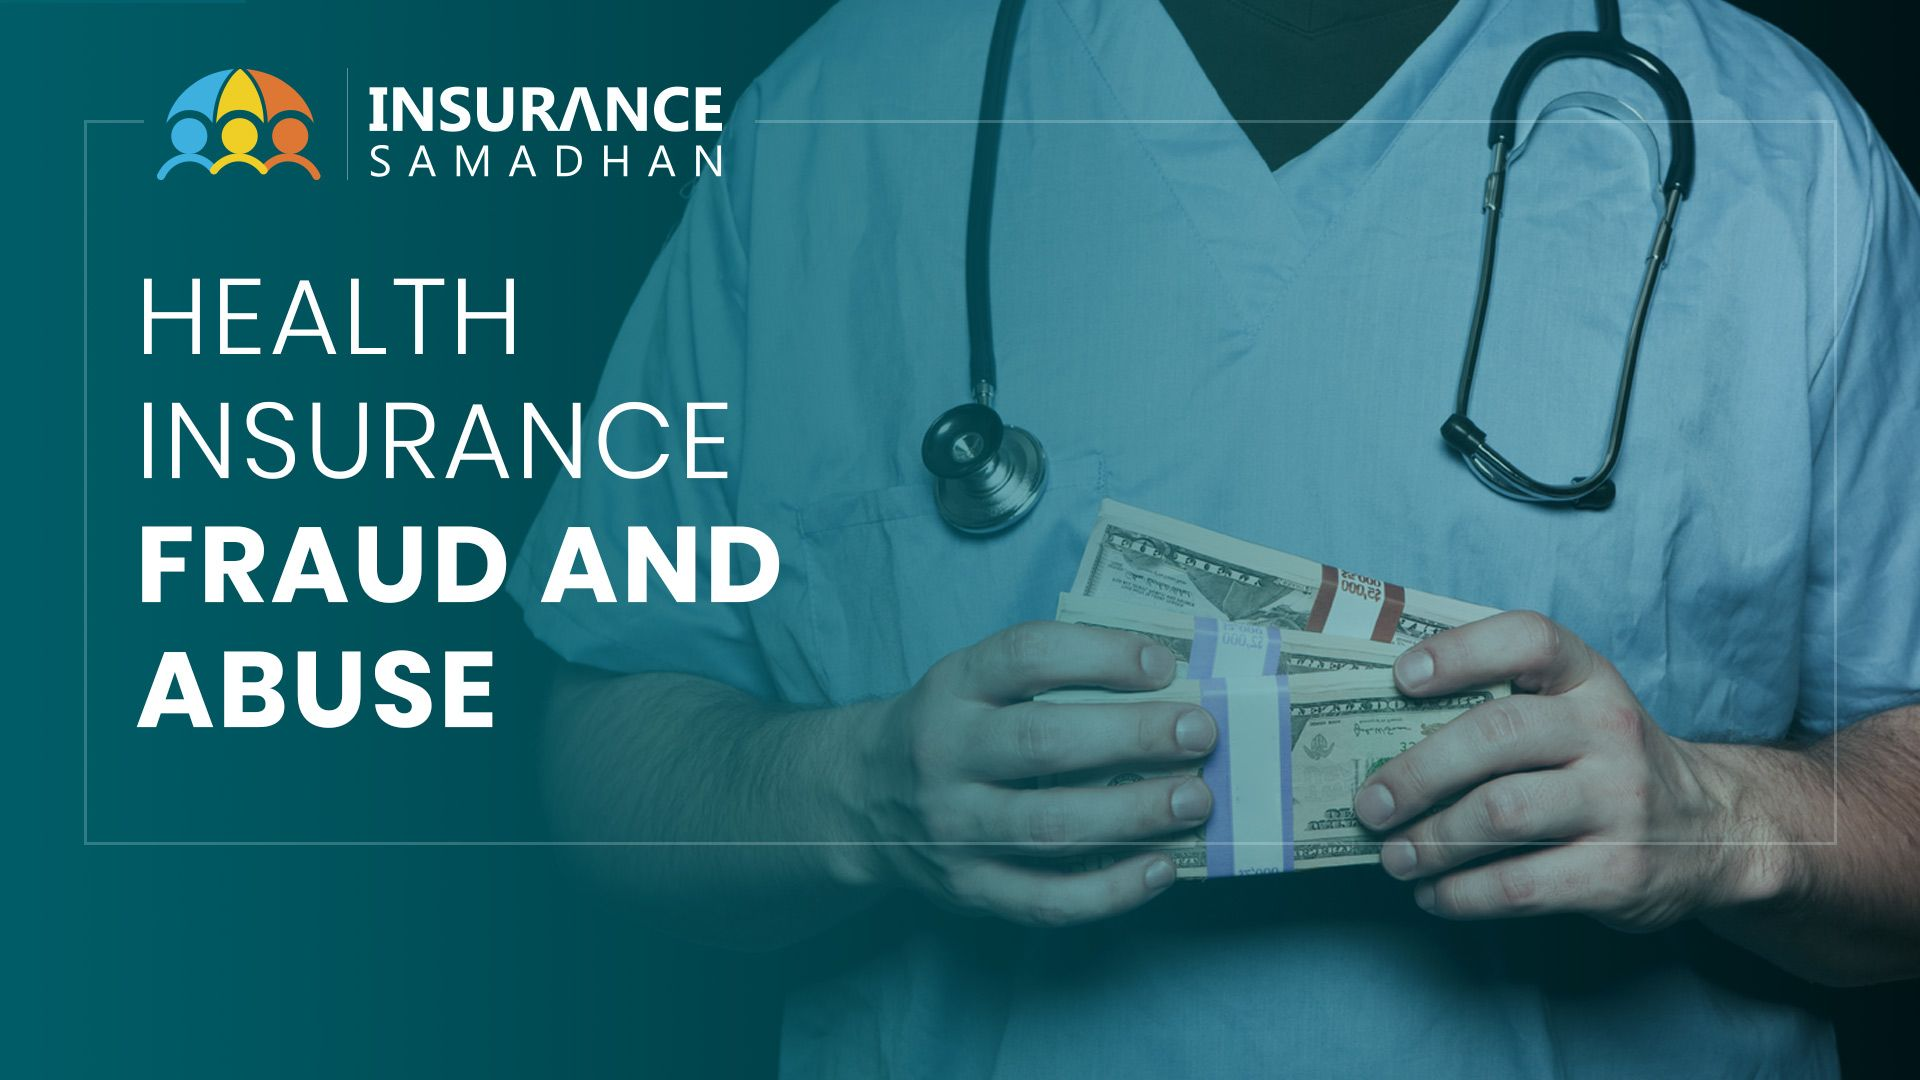 Health Insurance Fraud Definition, Types, Impact and Ways To Reduce It